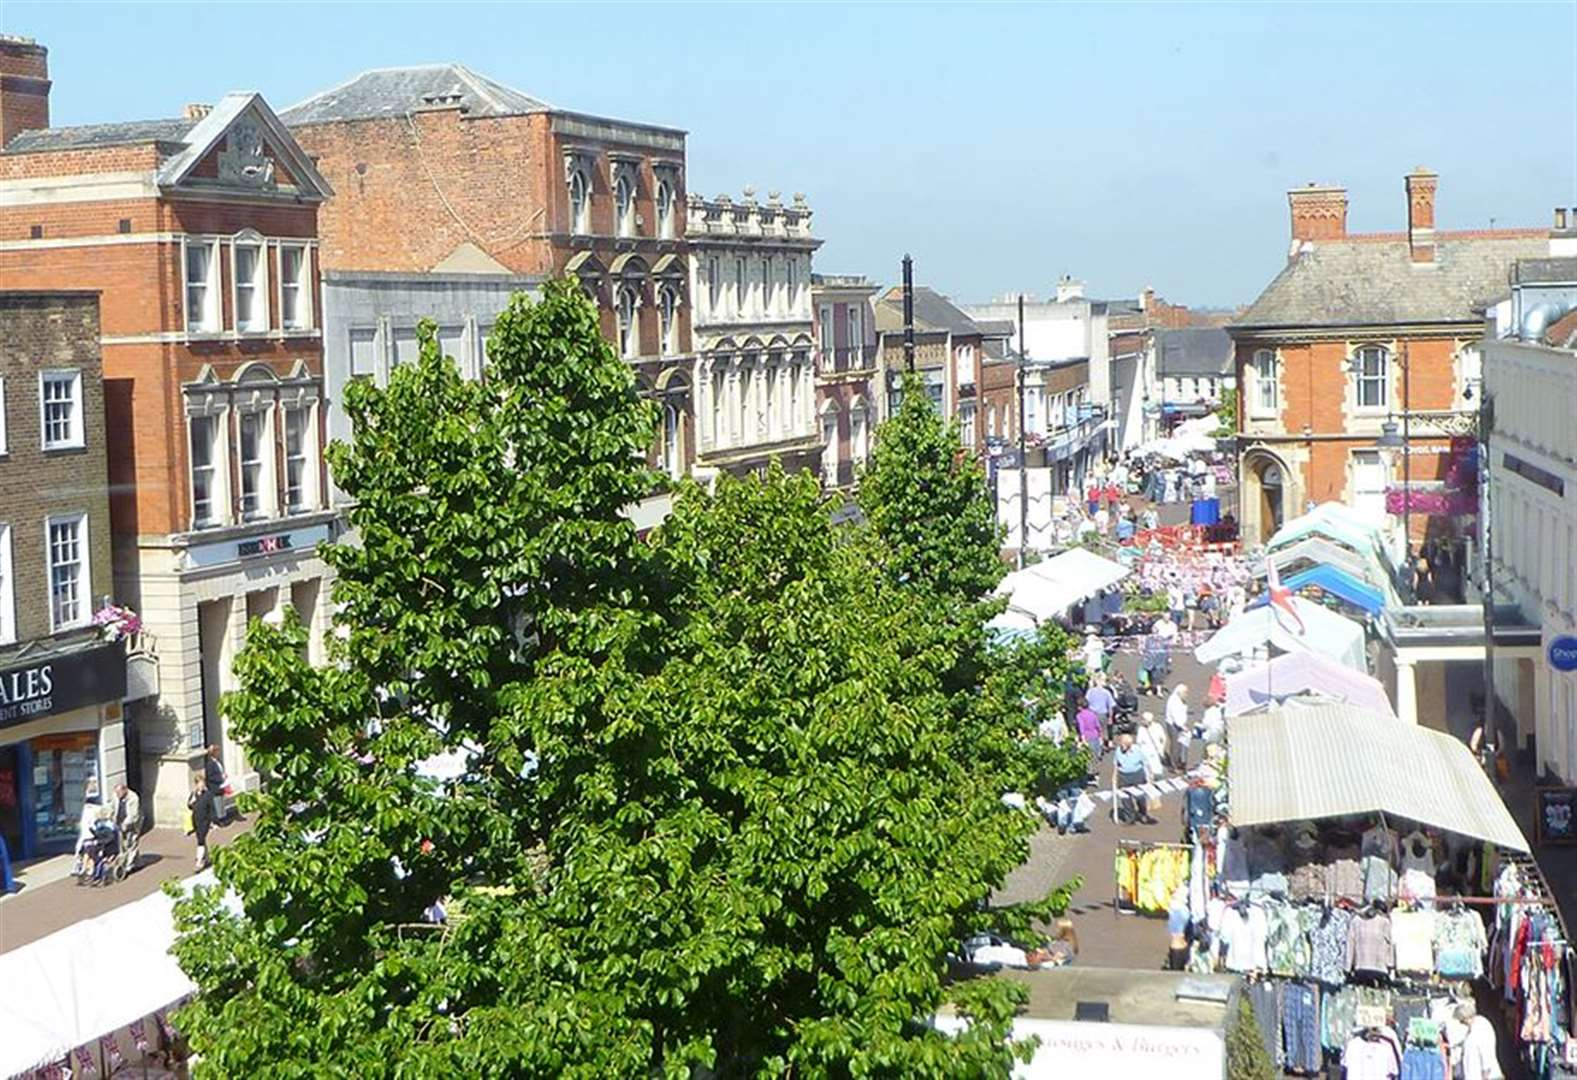 Plans to regenerate two town centres